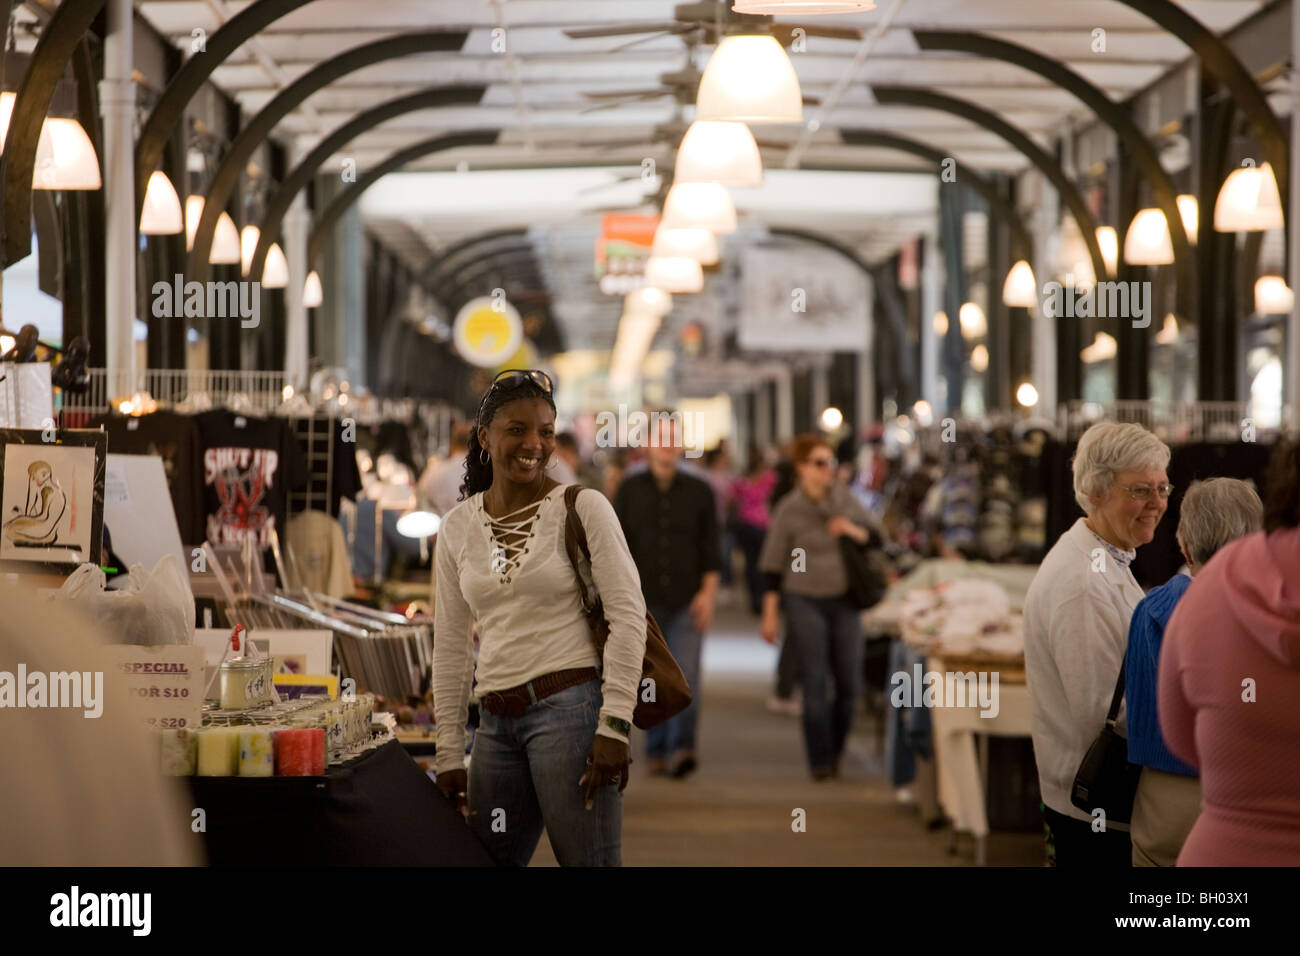 Woman in French Market in French Quarter, New Orleans, Louisiana Stock Photo